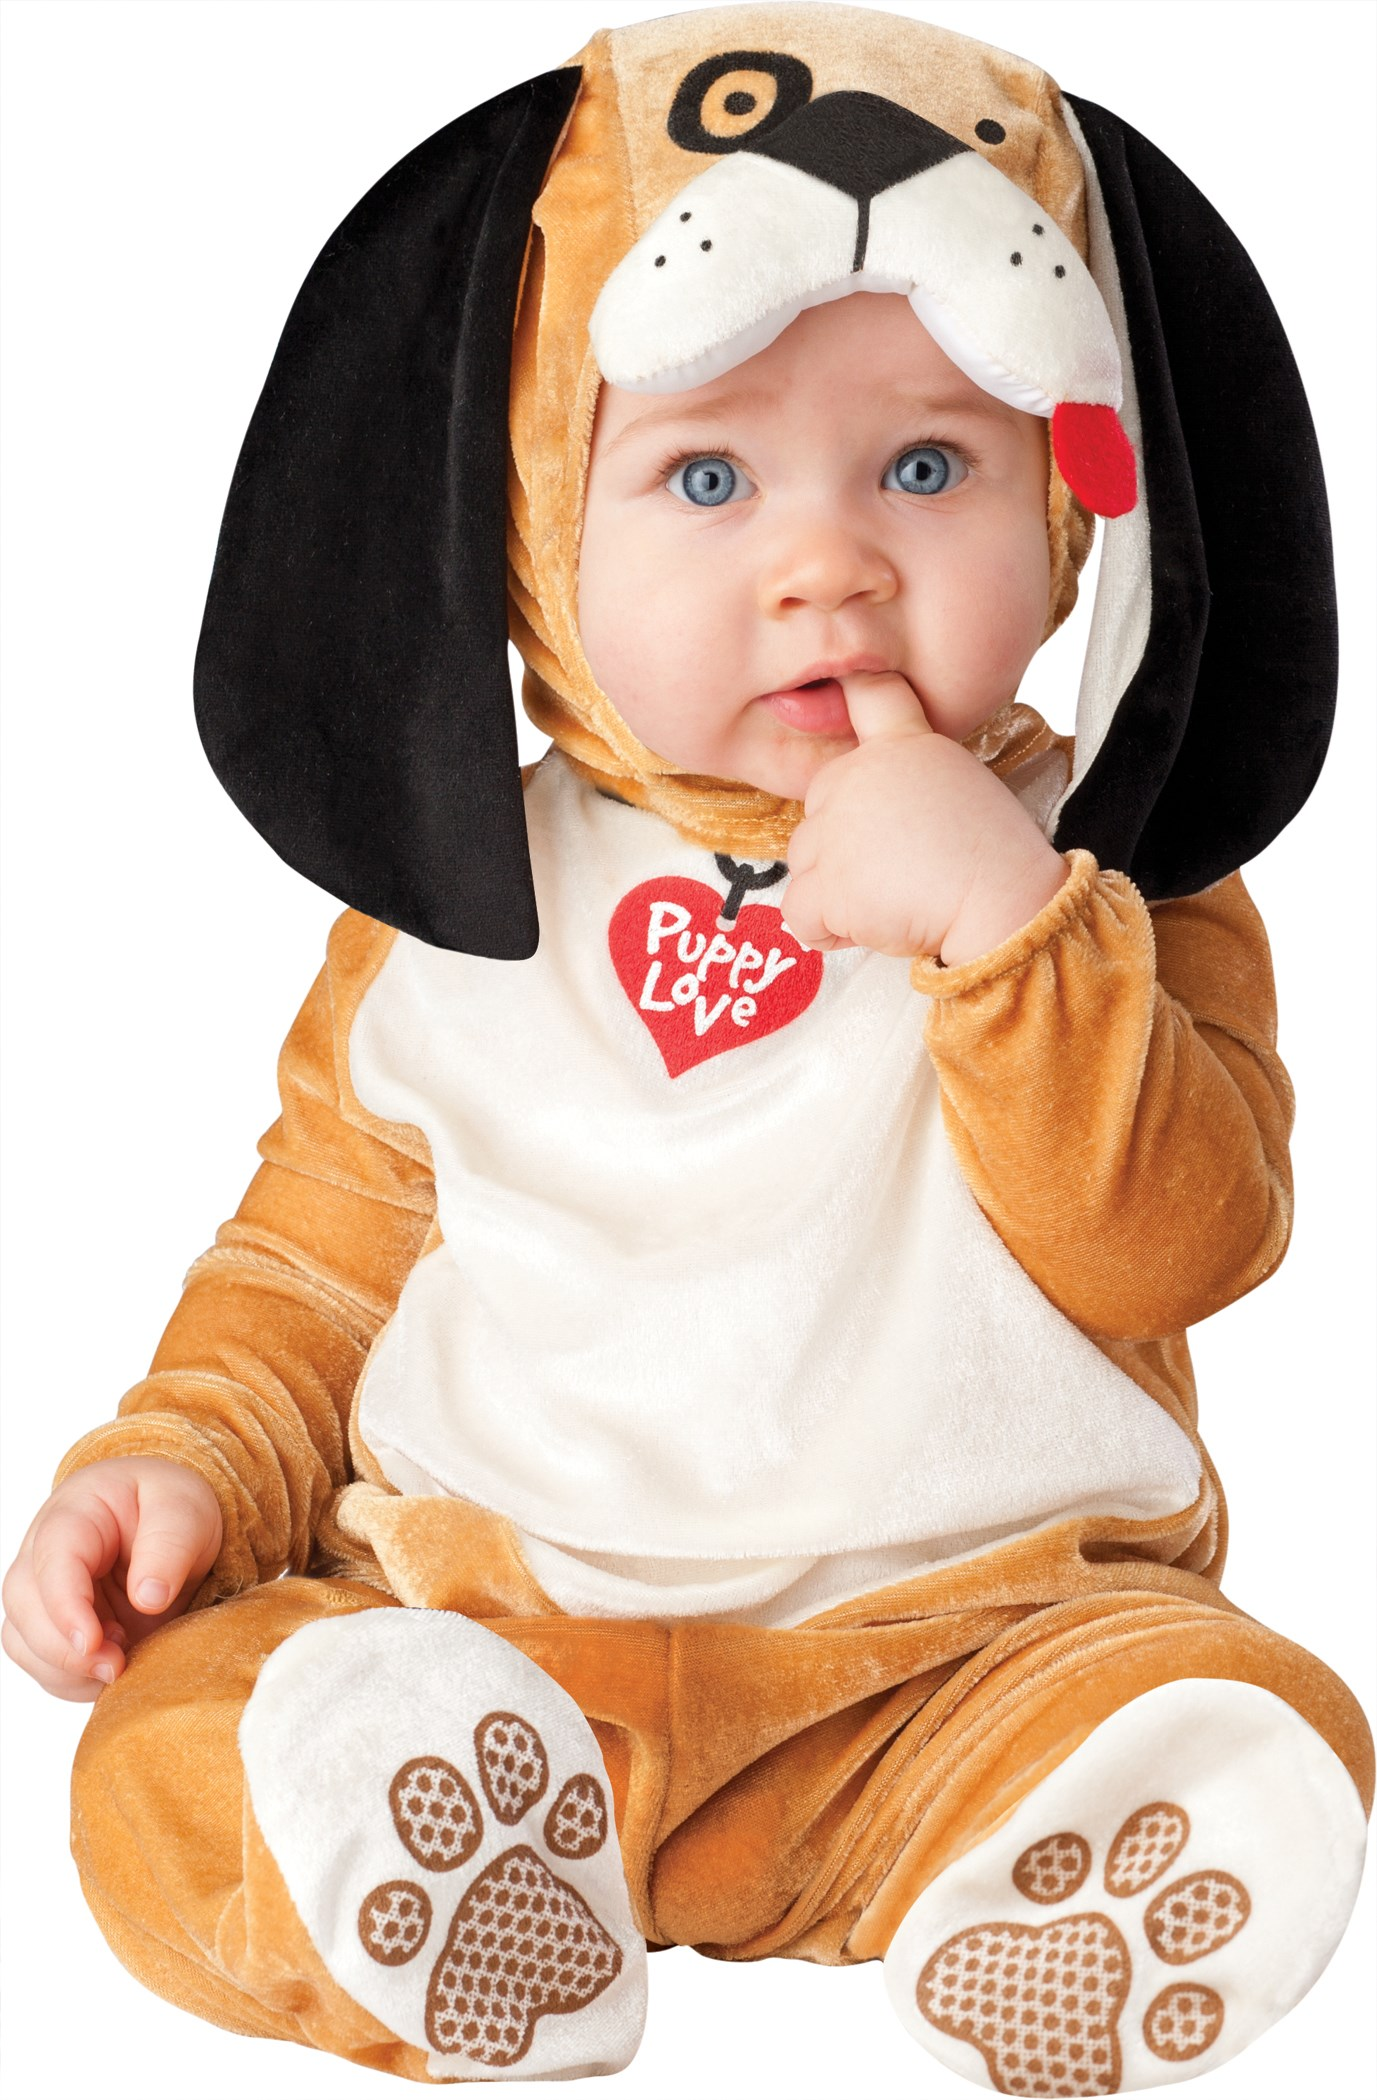 Puppy Love Infant / Toddler Costume 6/12 Months